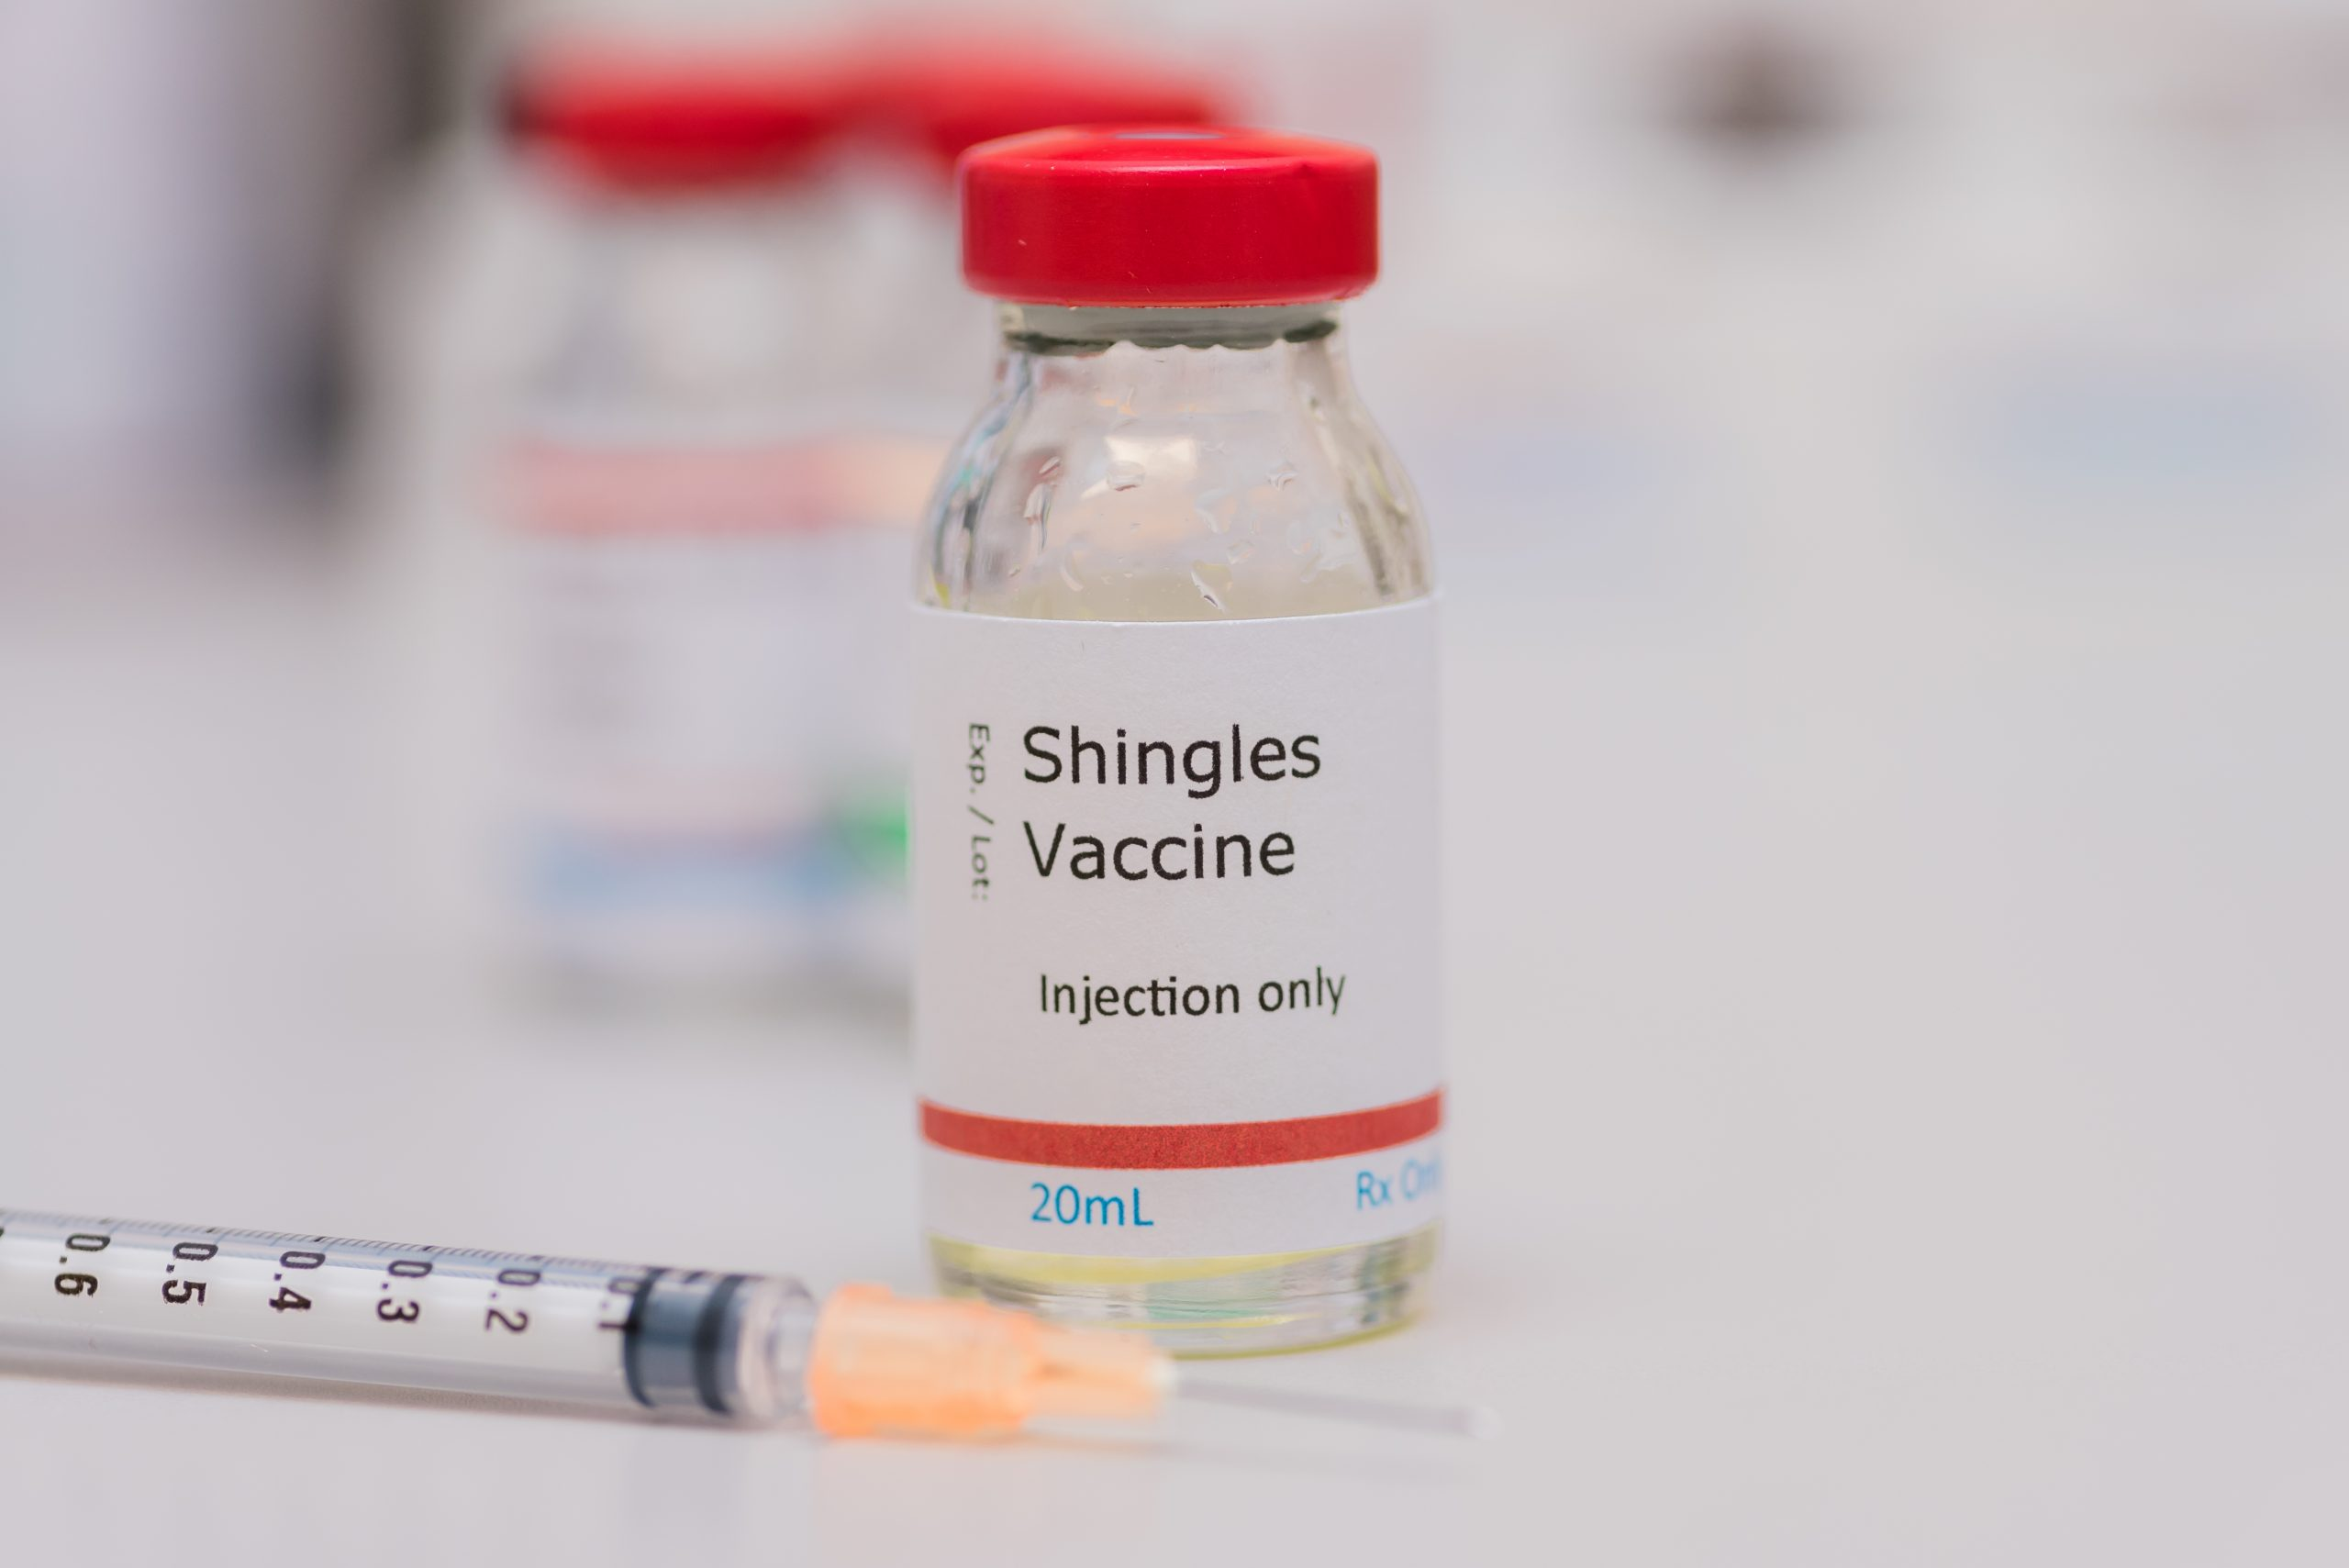 Shingles vaccine concept with syringe in foreground, vaccination vial on counter with additional vials in background